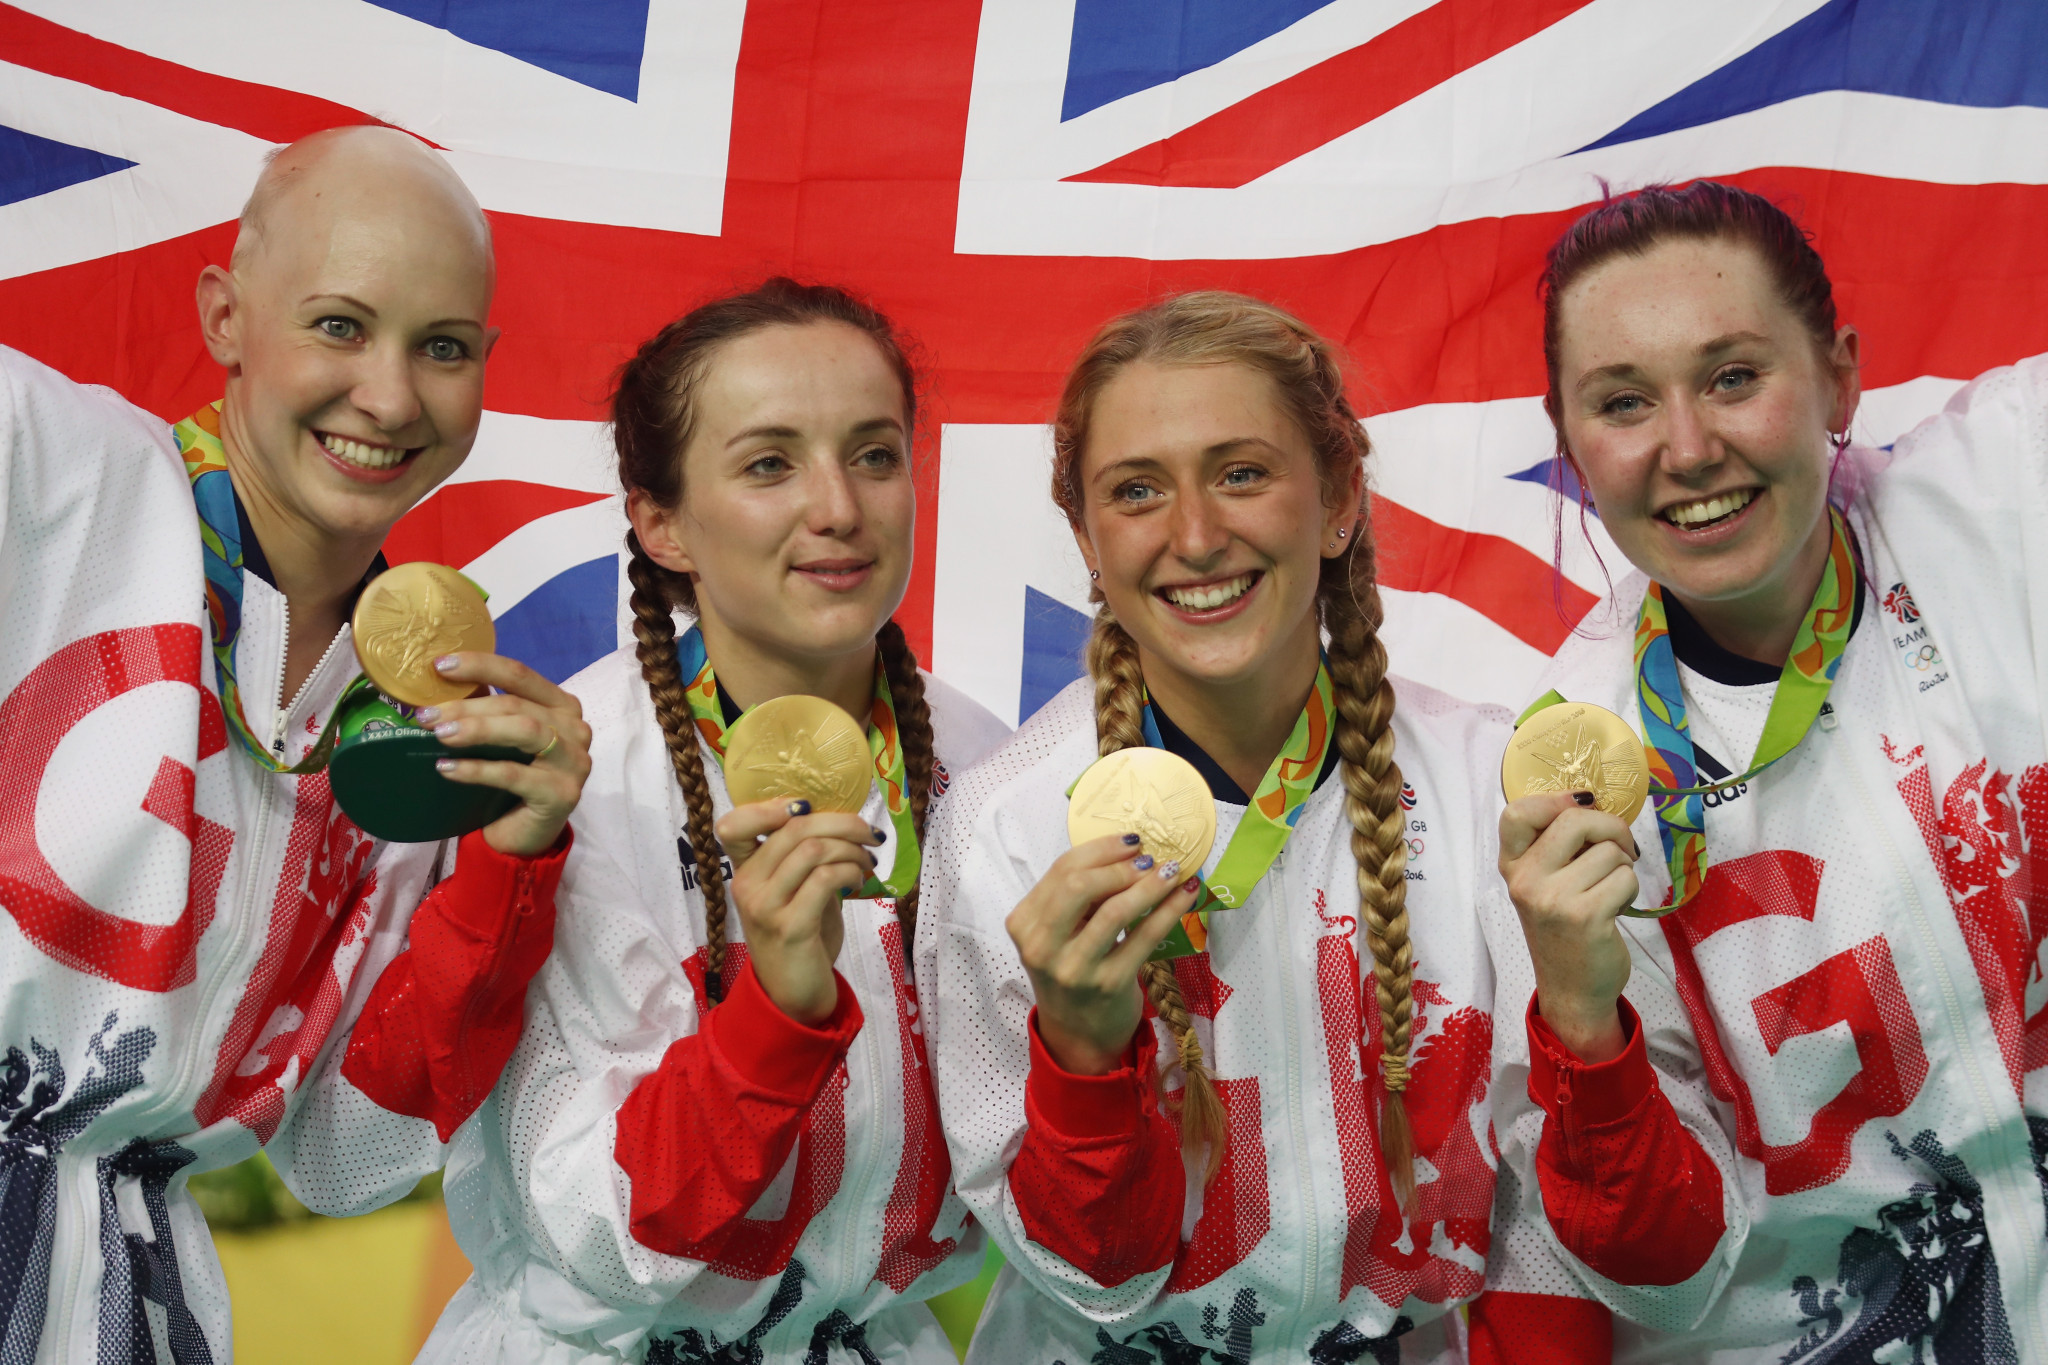 Britain finished second in the medals table at Rio 2016 ©Getty Images